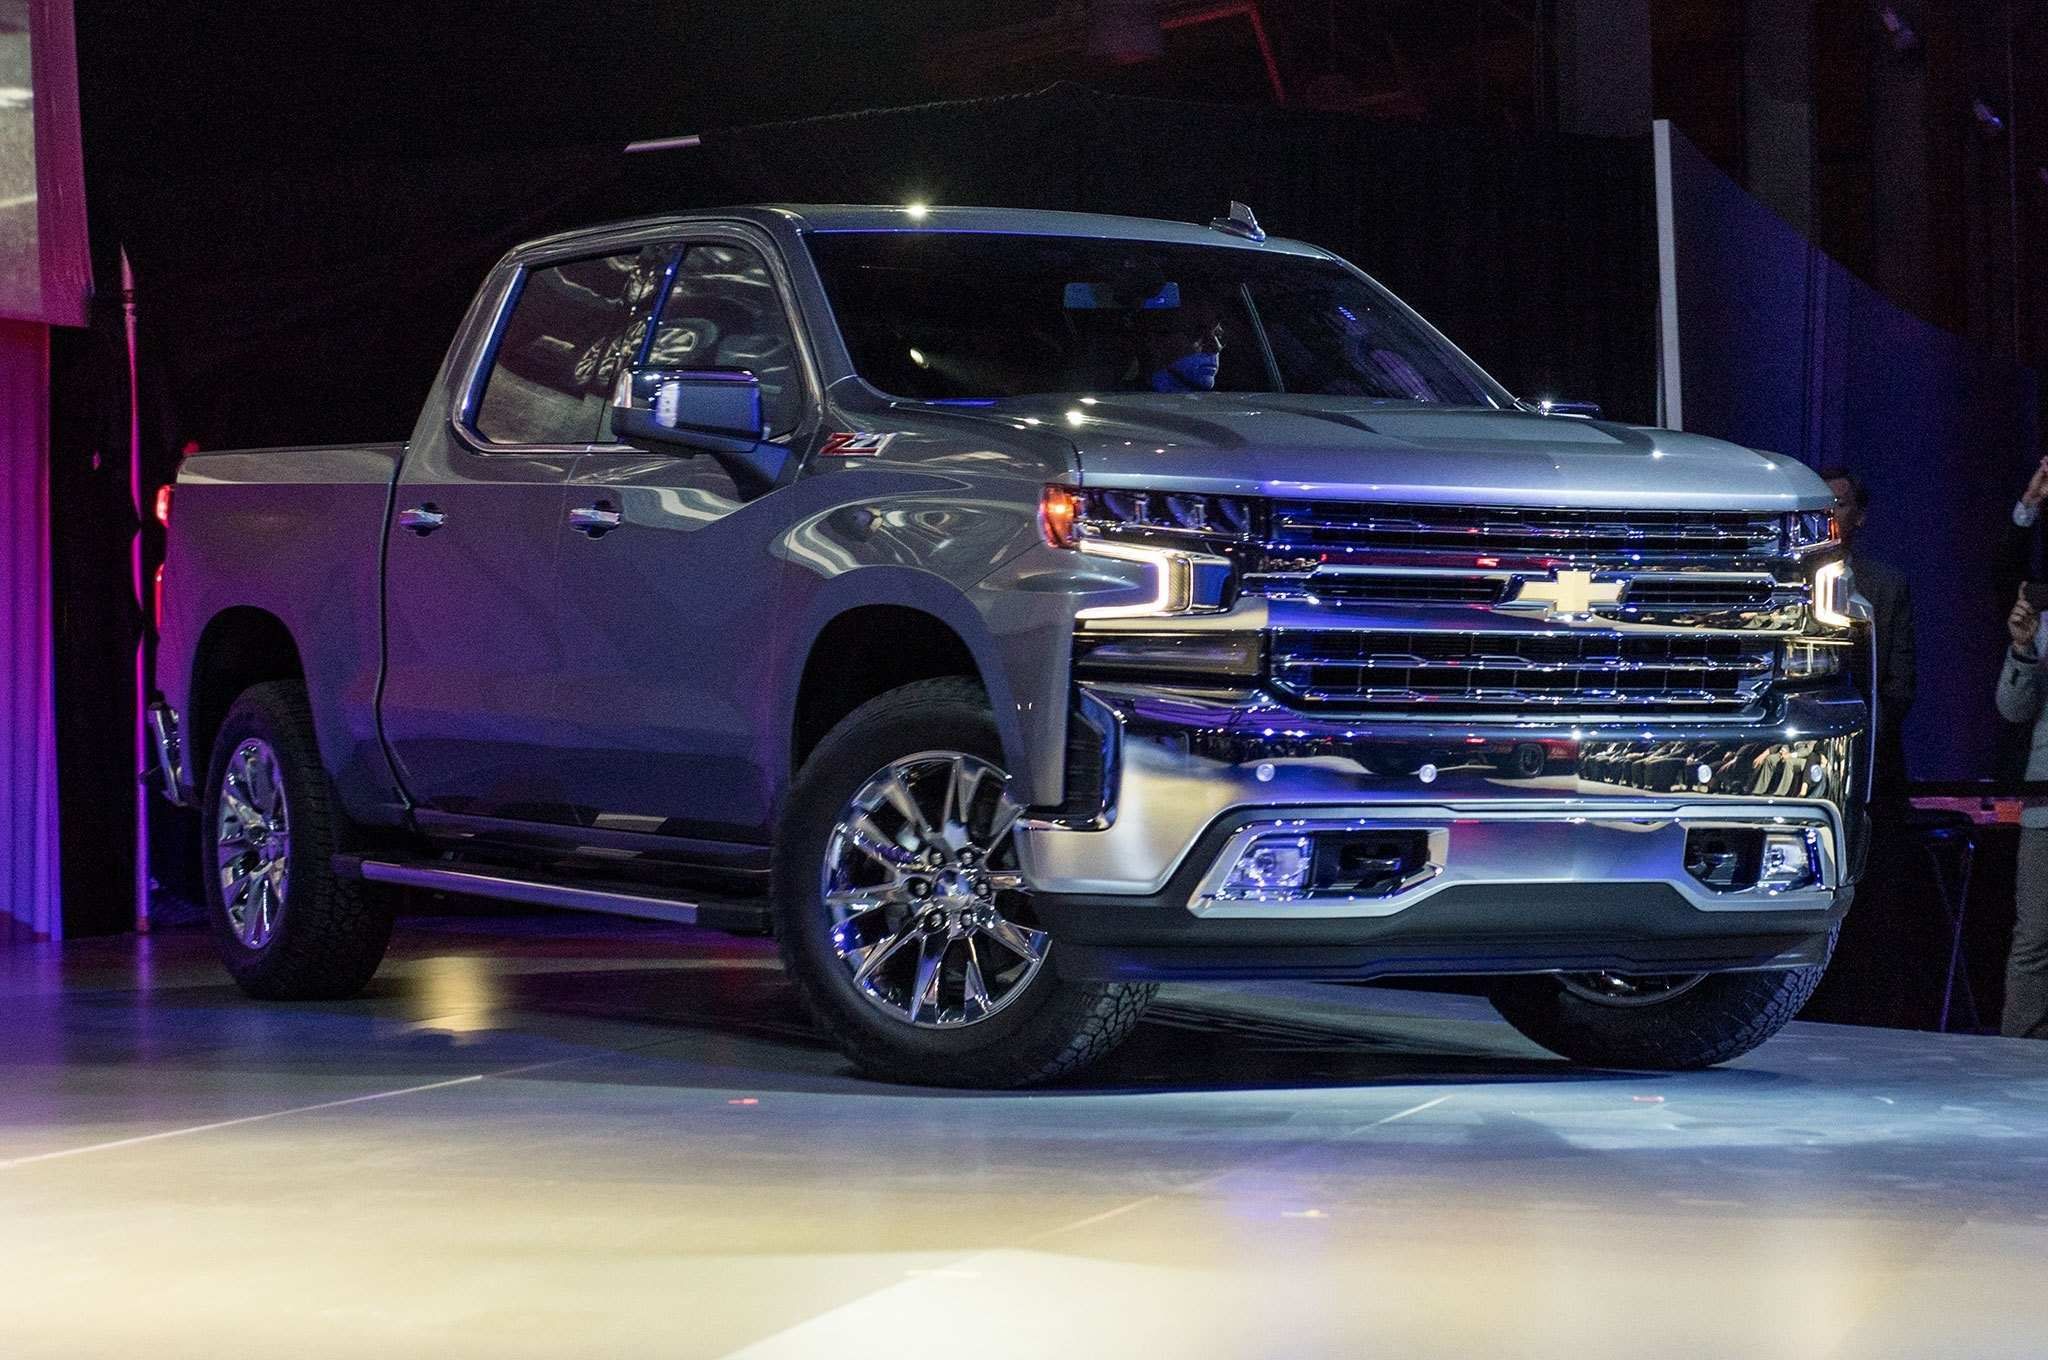 35 Gallery of 2020 Chevrolet 2500 Ltz Performance and New Engine with 2020 Chevrolet 2500 Ltz